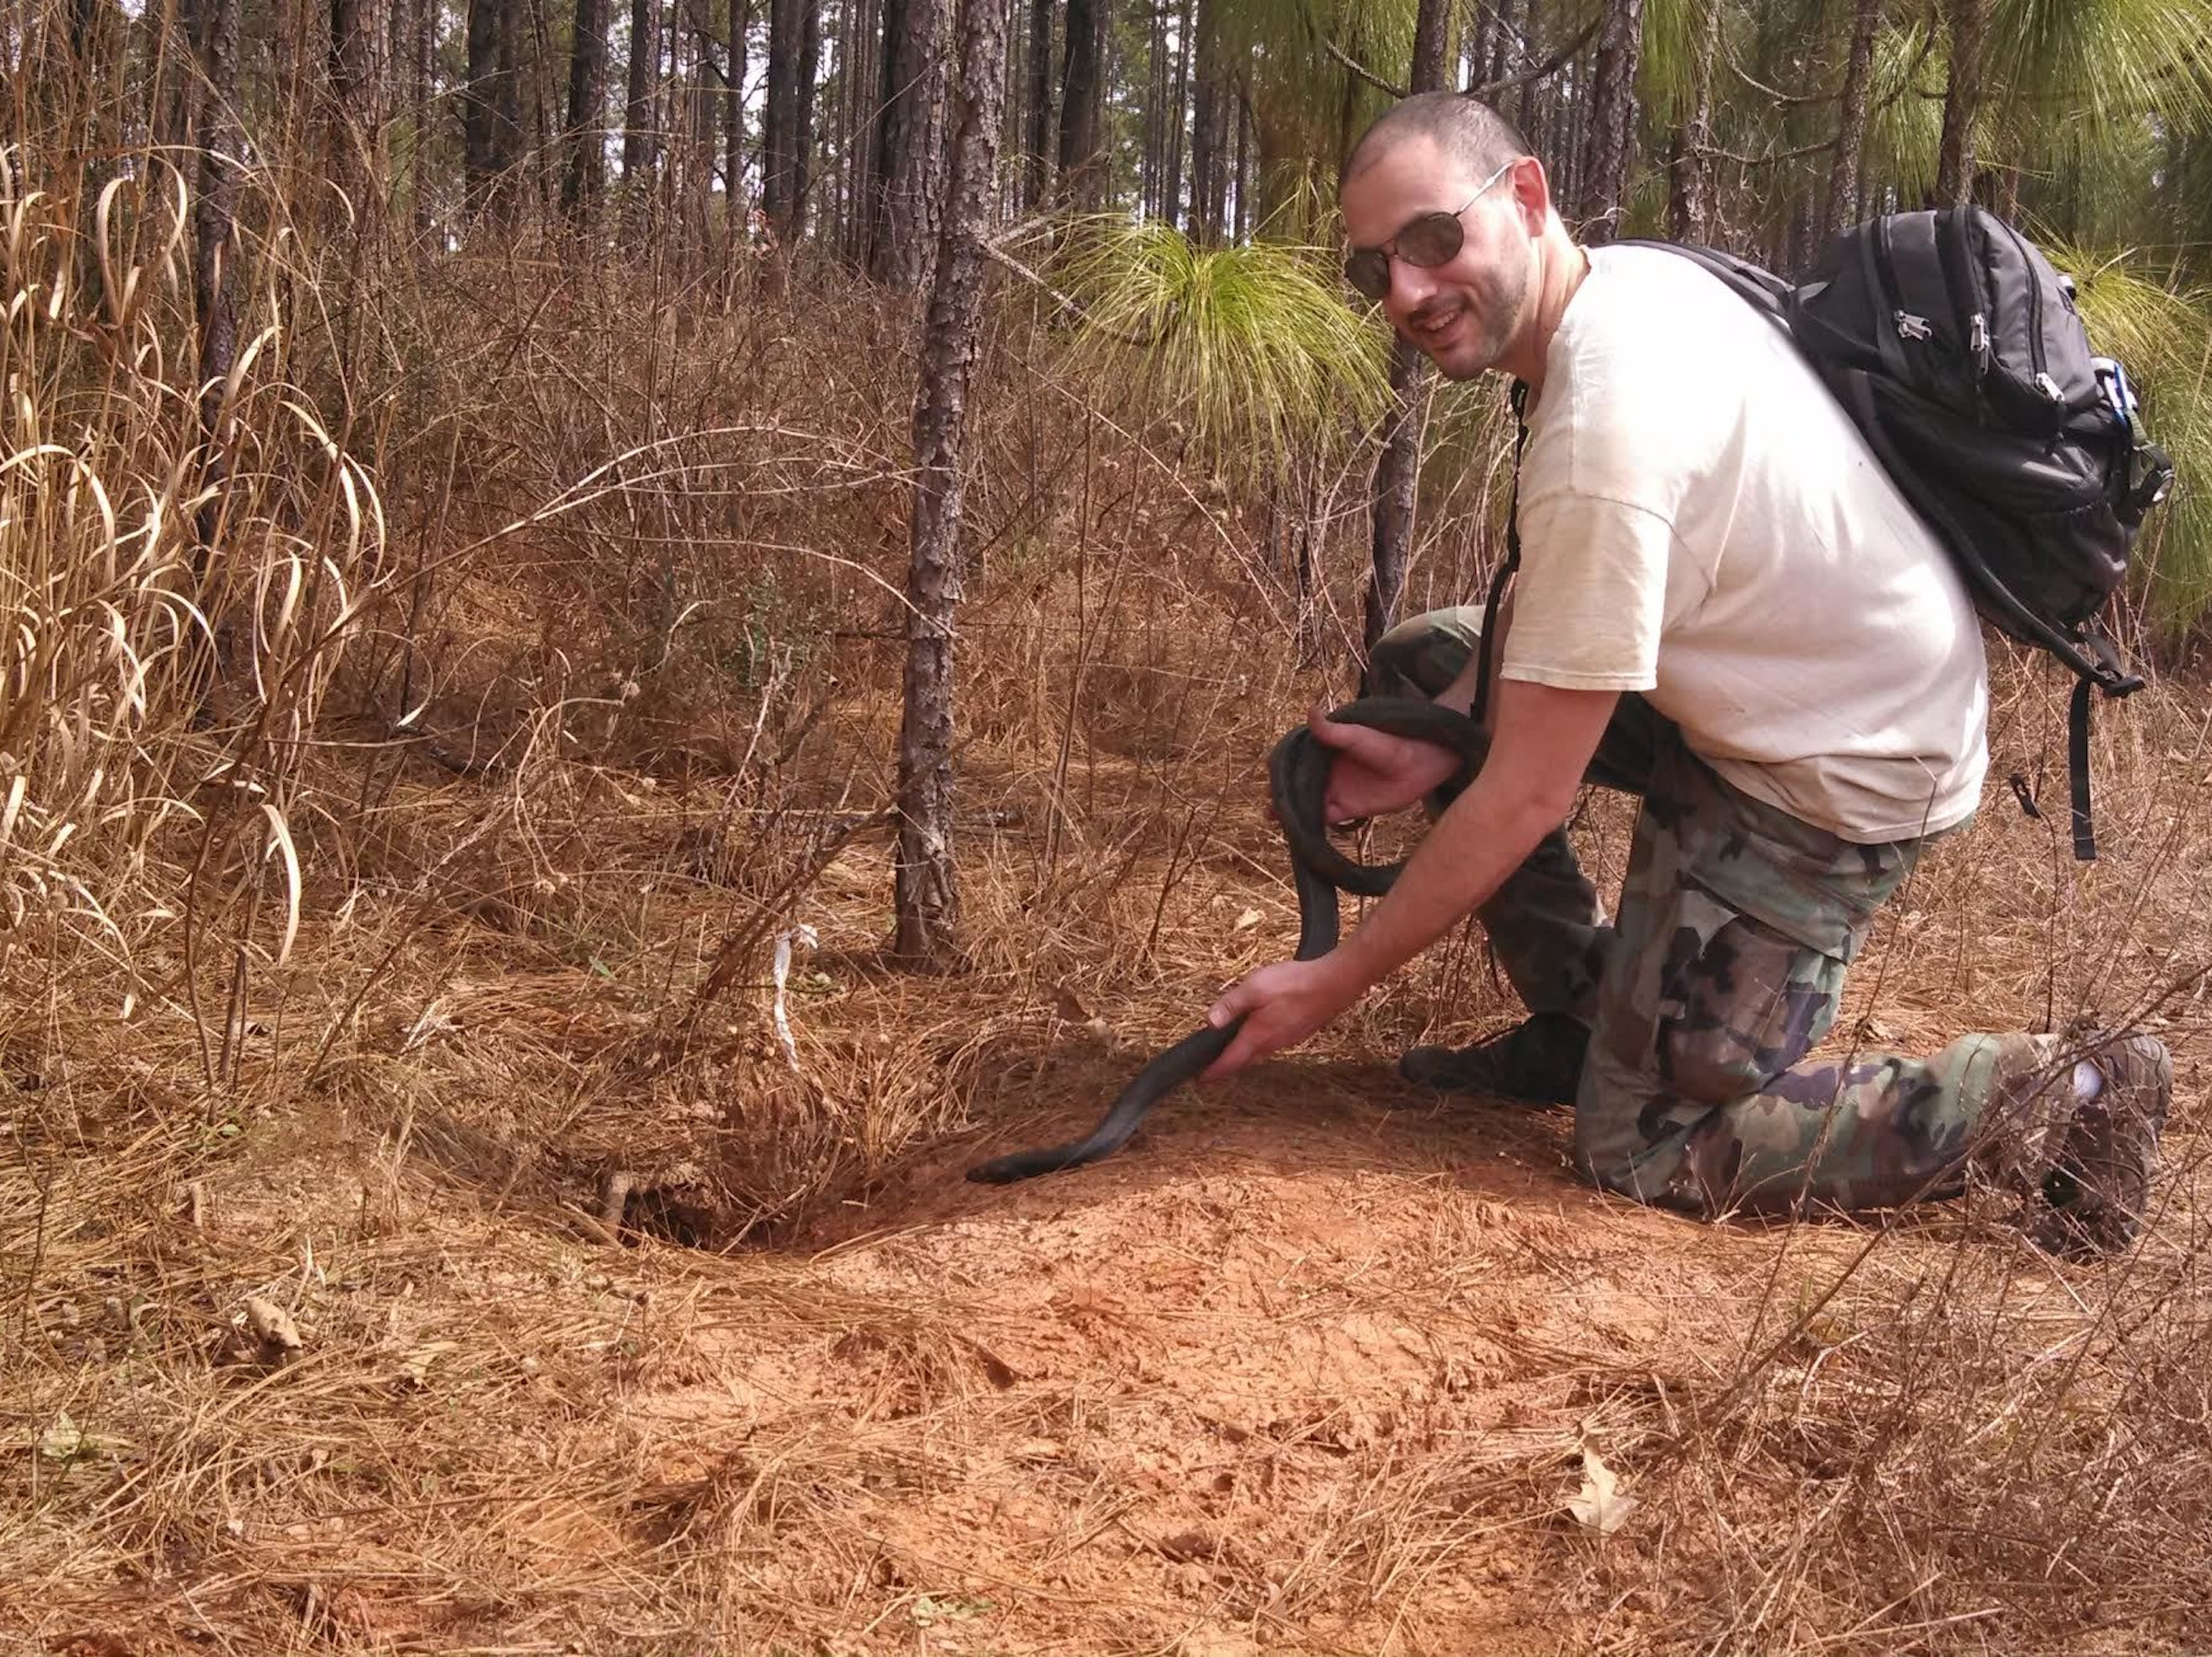 Meet Dr. David Steen, the Man Saving Snakes on Twitter